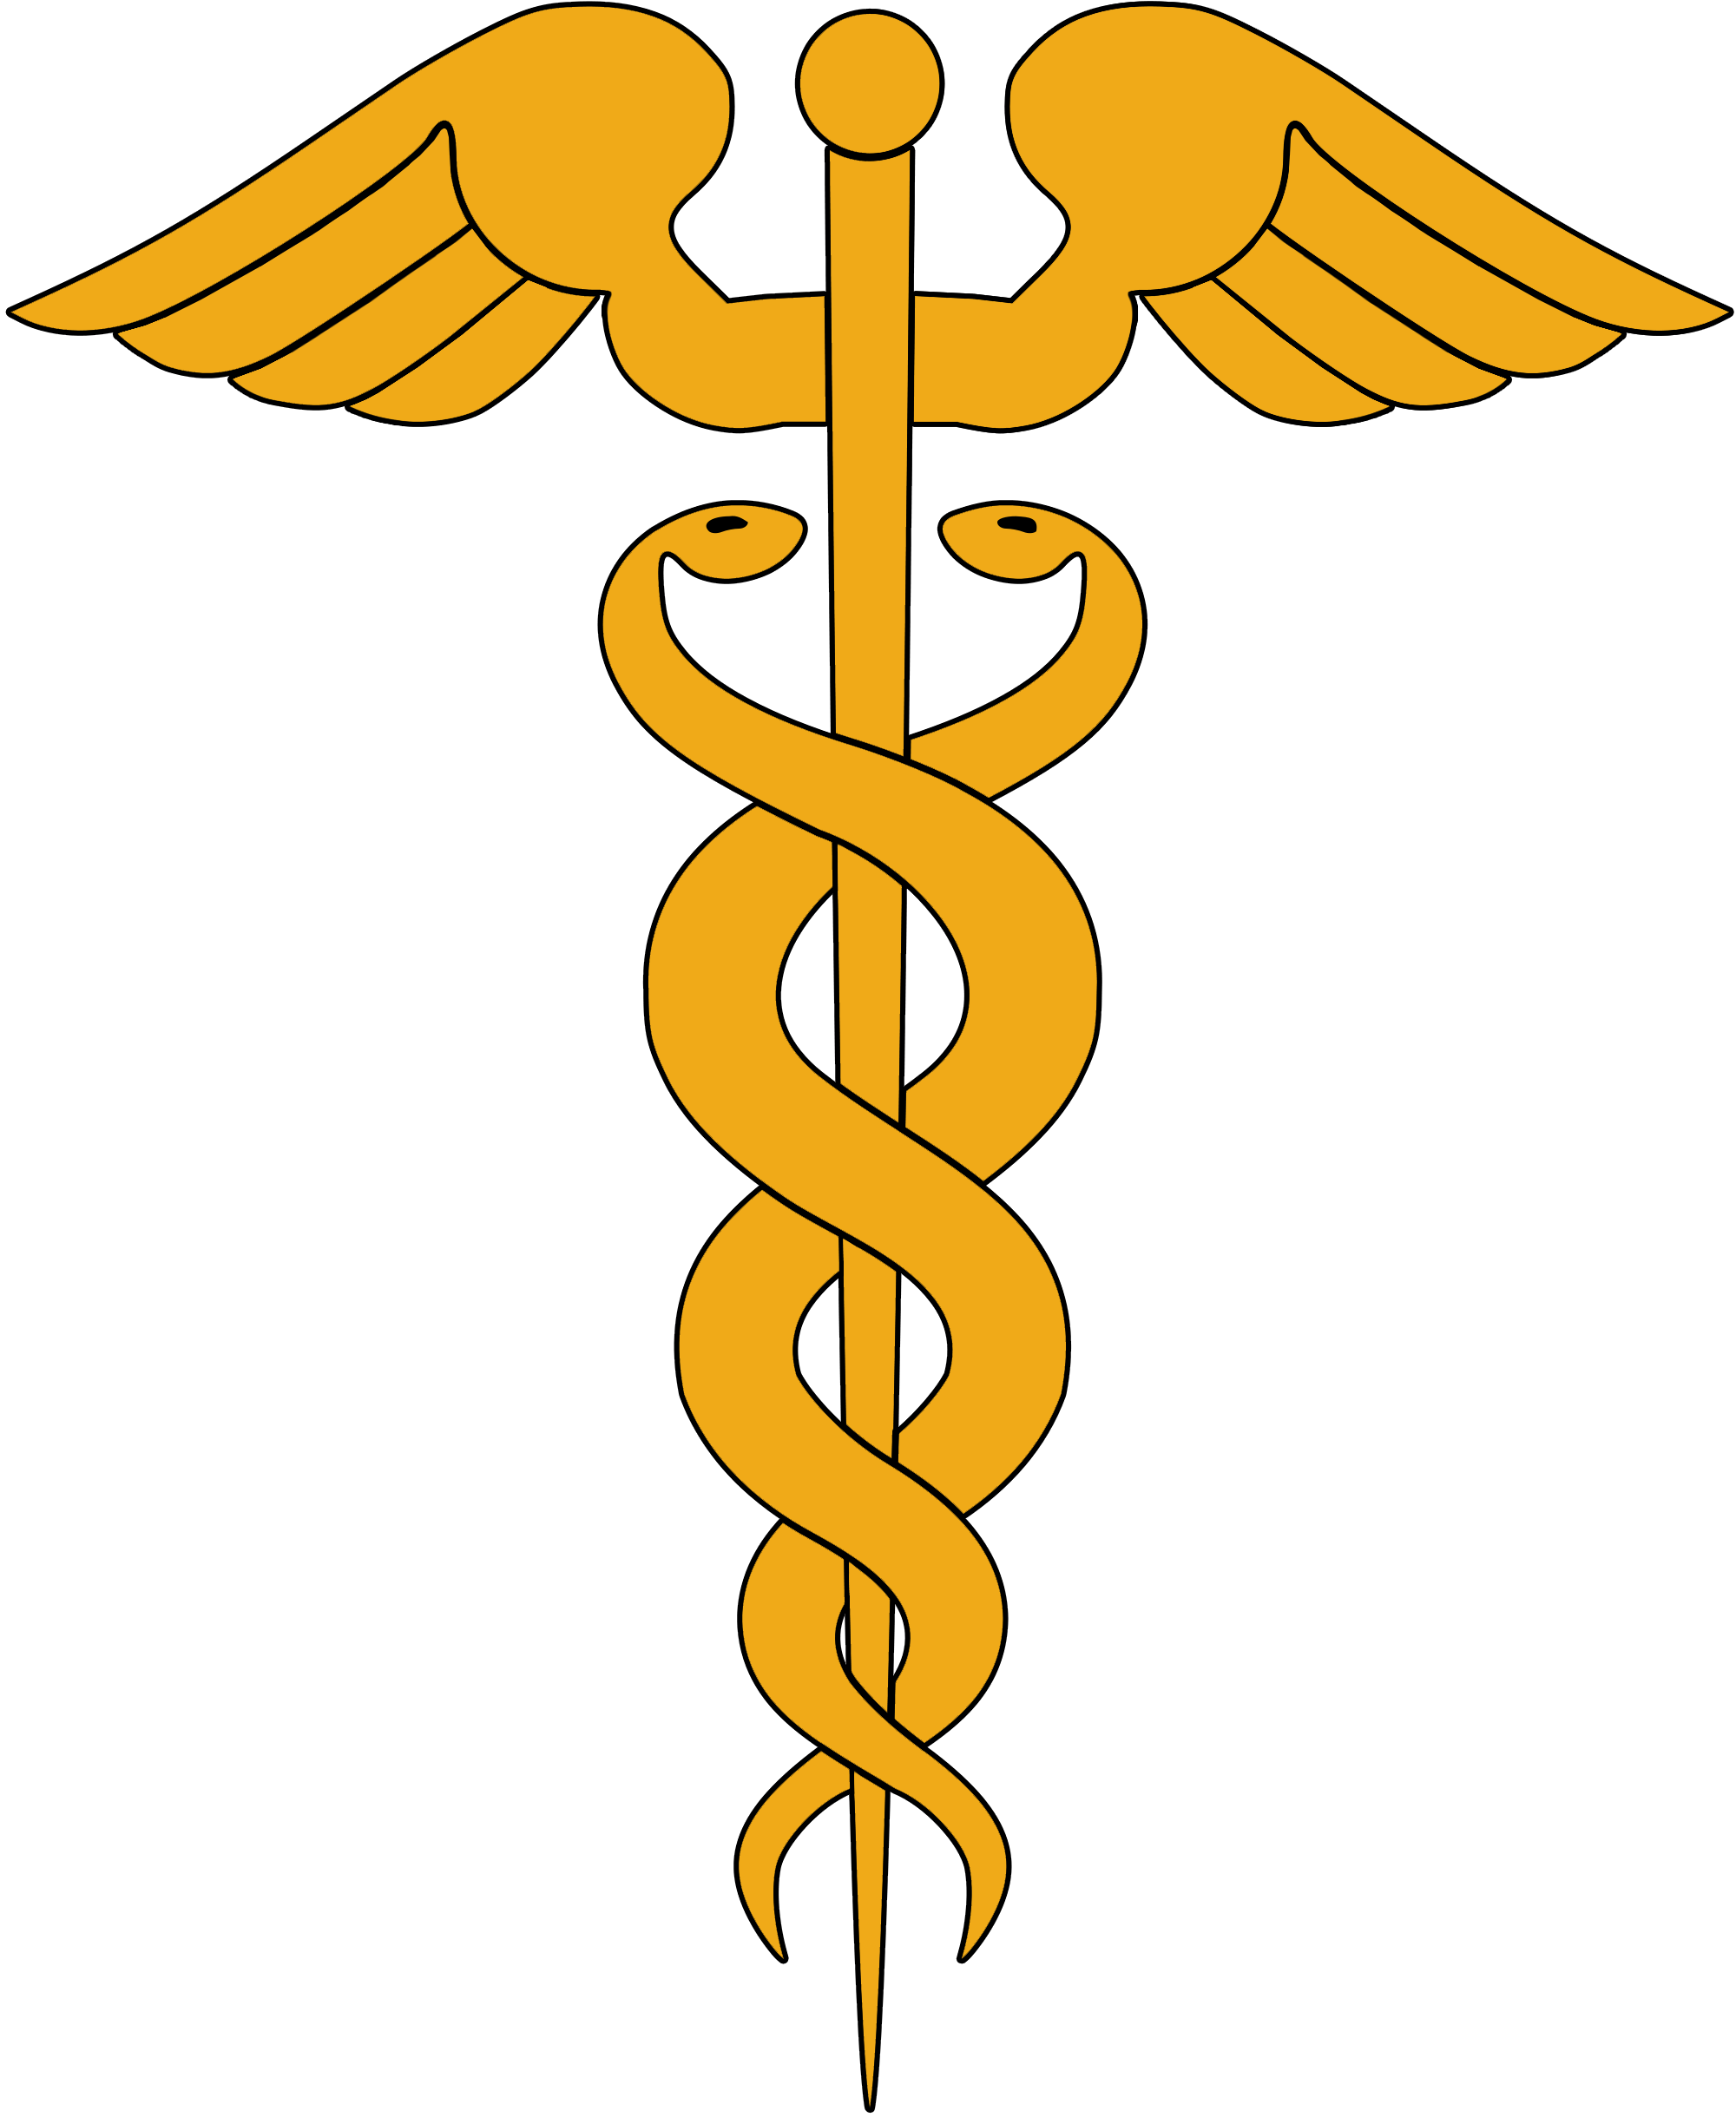 File:Heraldic Caduceus.png - Wikimedia Commons